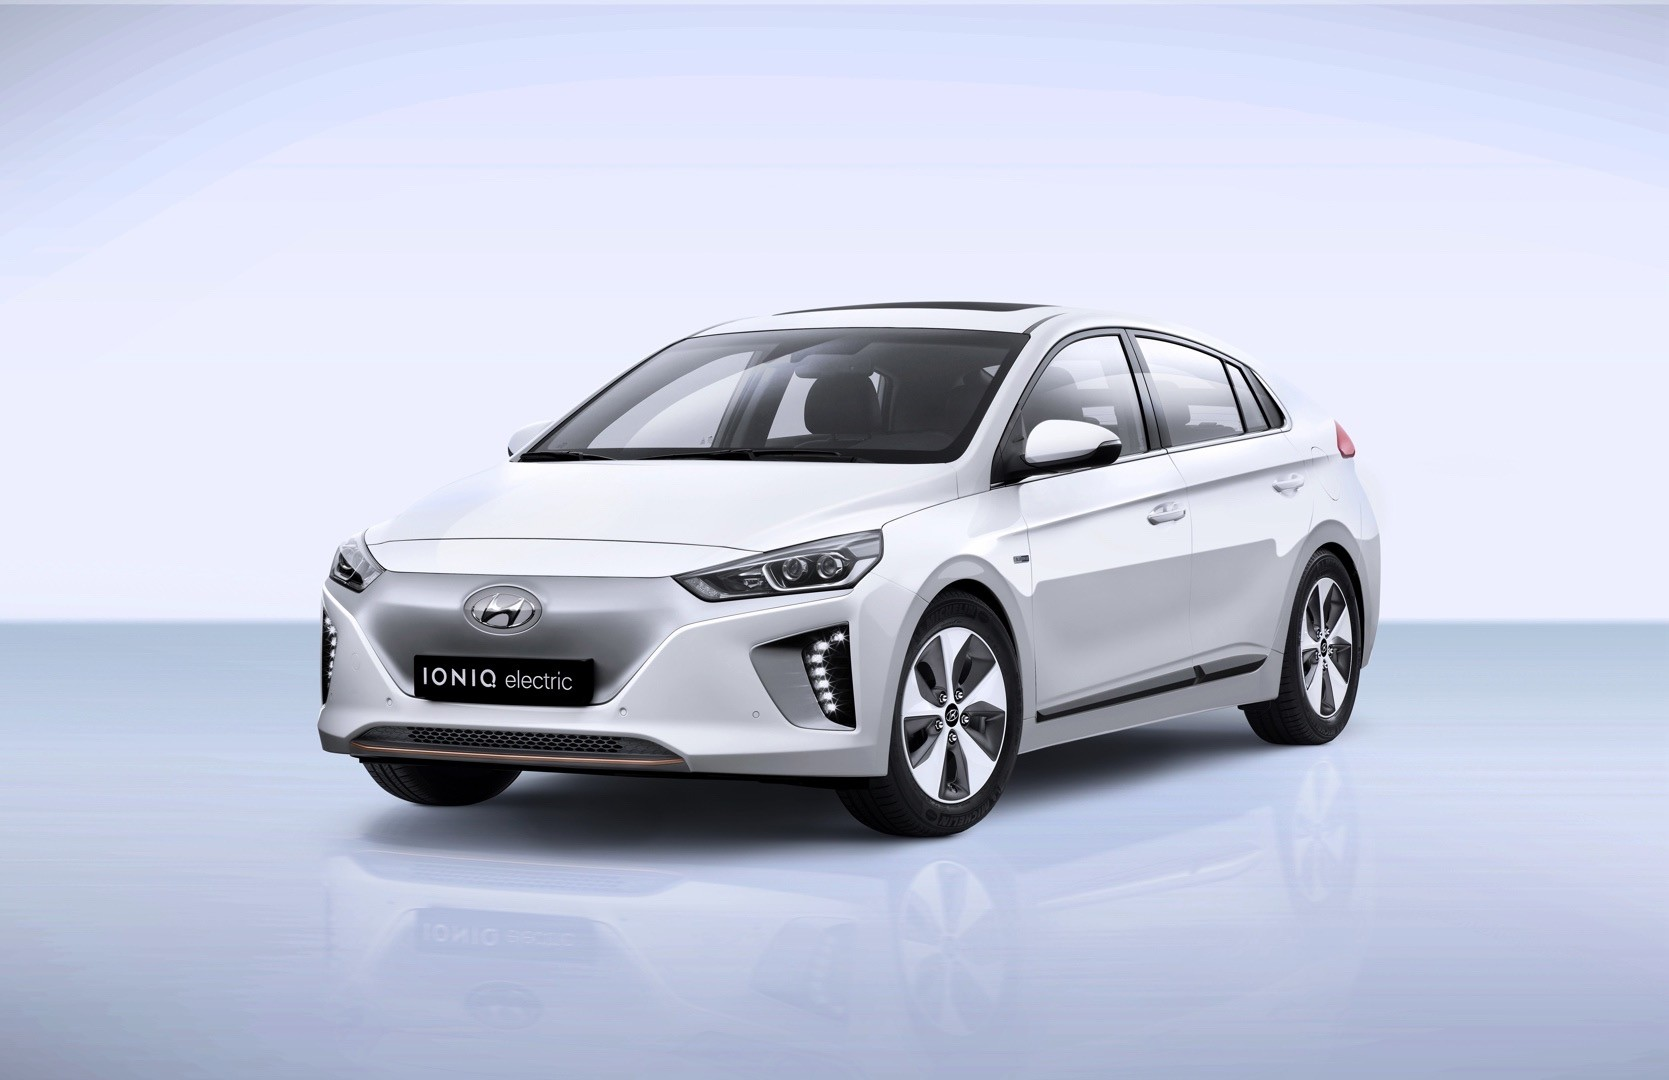 hyundai ioniq electric acceleration test 0 to 50 km h in 3 3 seconds autoevolution. Black Bedroom Furniture Sets. Home Design Ideas